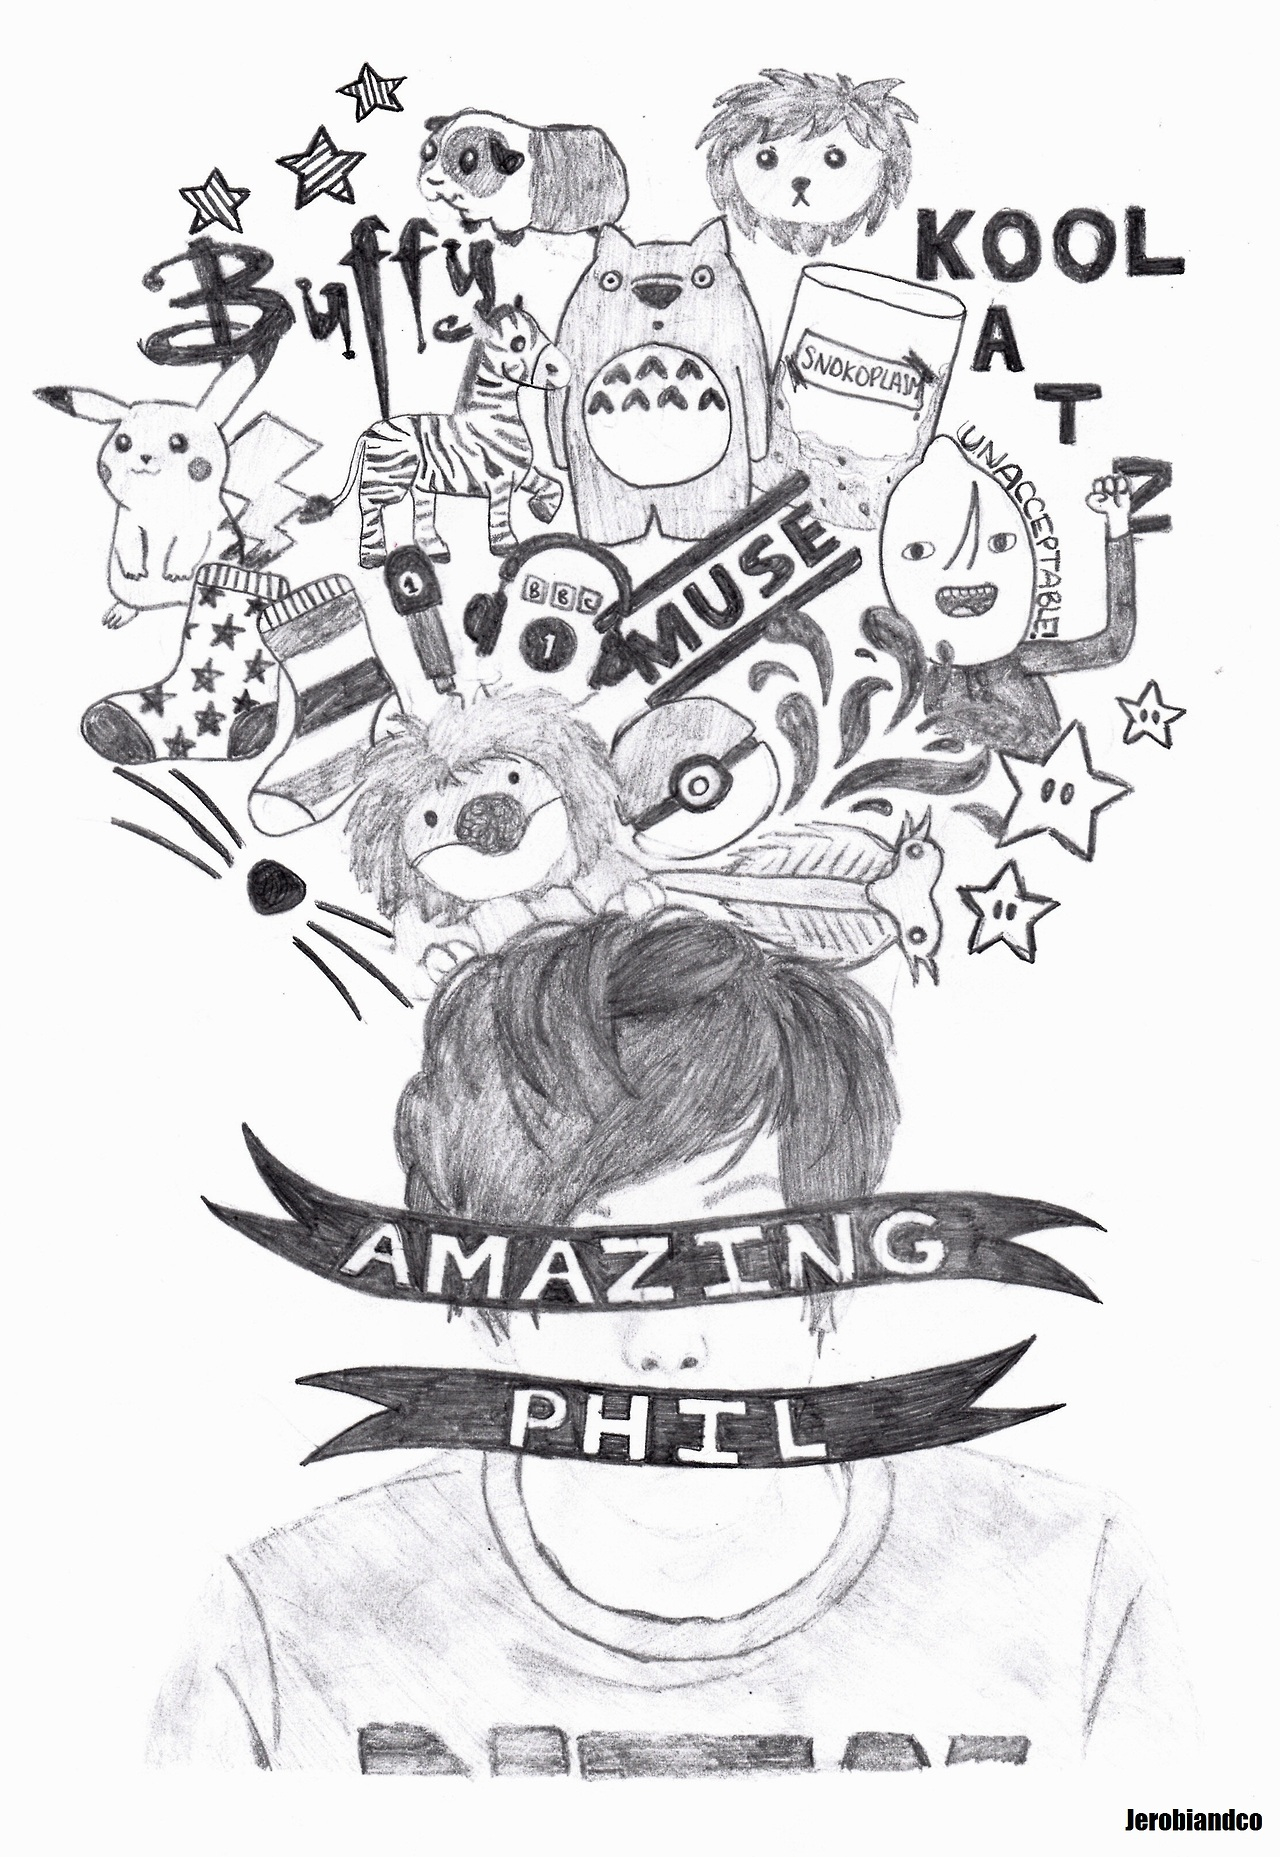 Drawn phill Tumblr 《 AmazingPhil Taken